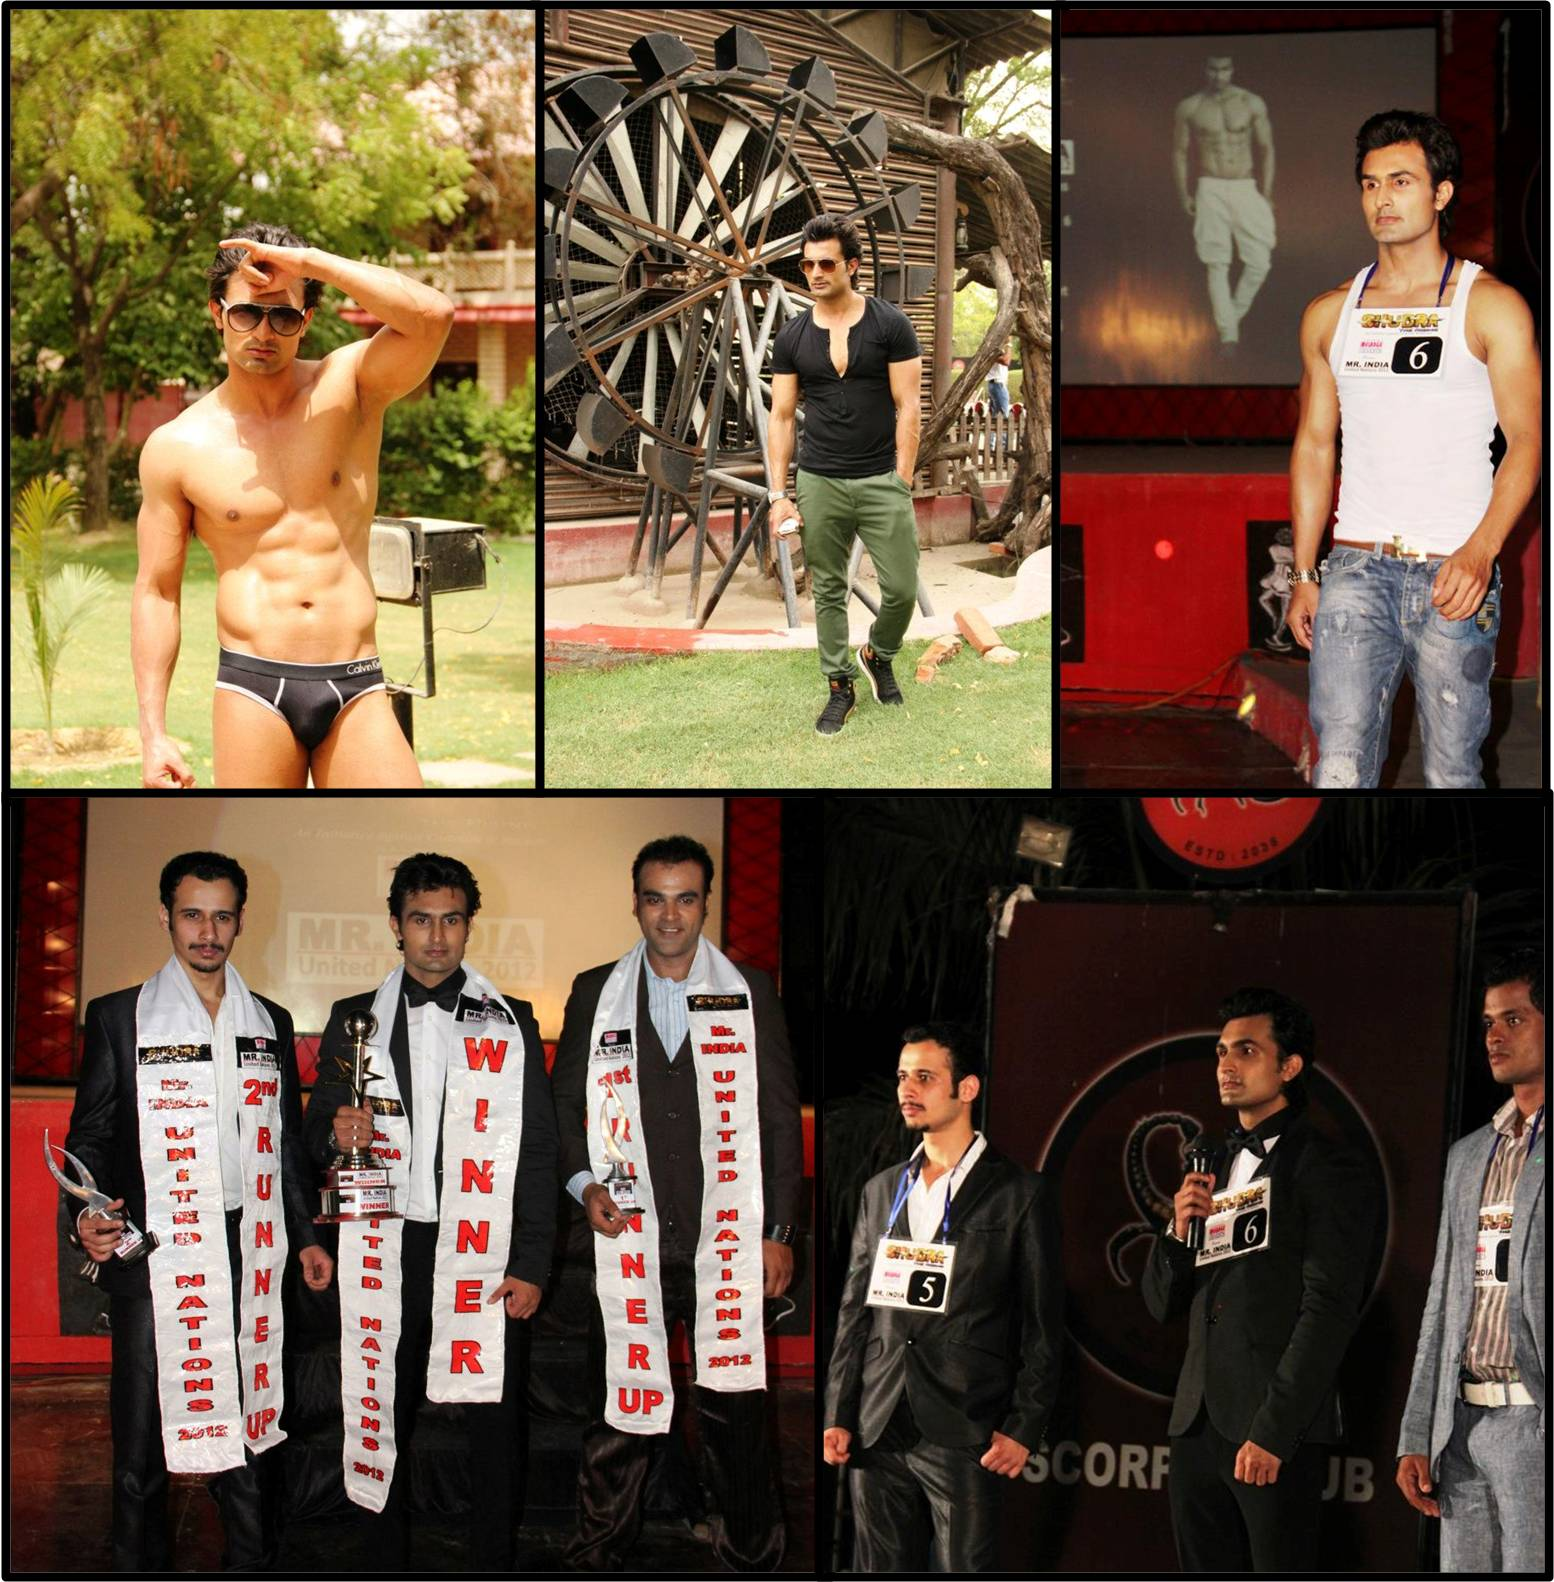 Rahul Vyas, Mr India United Nations 2012